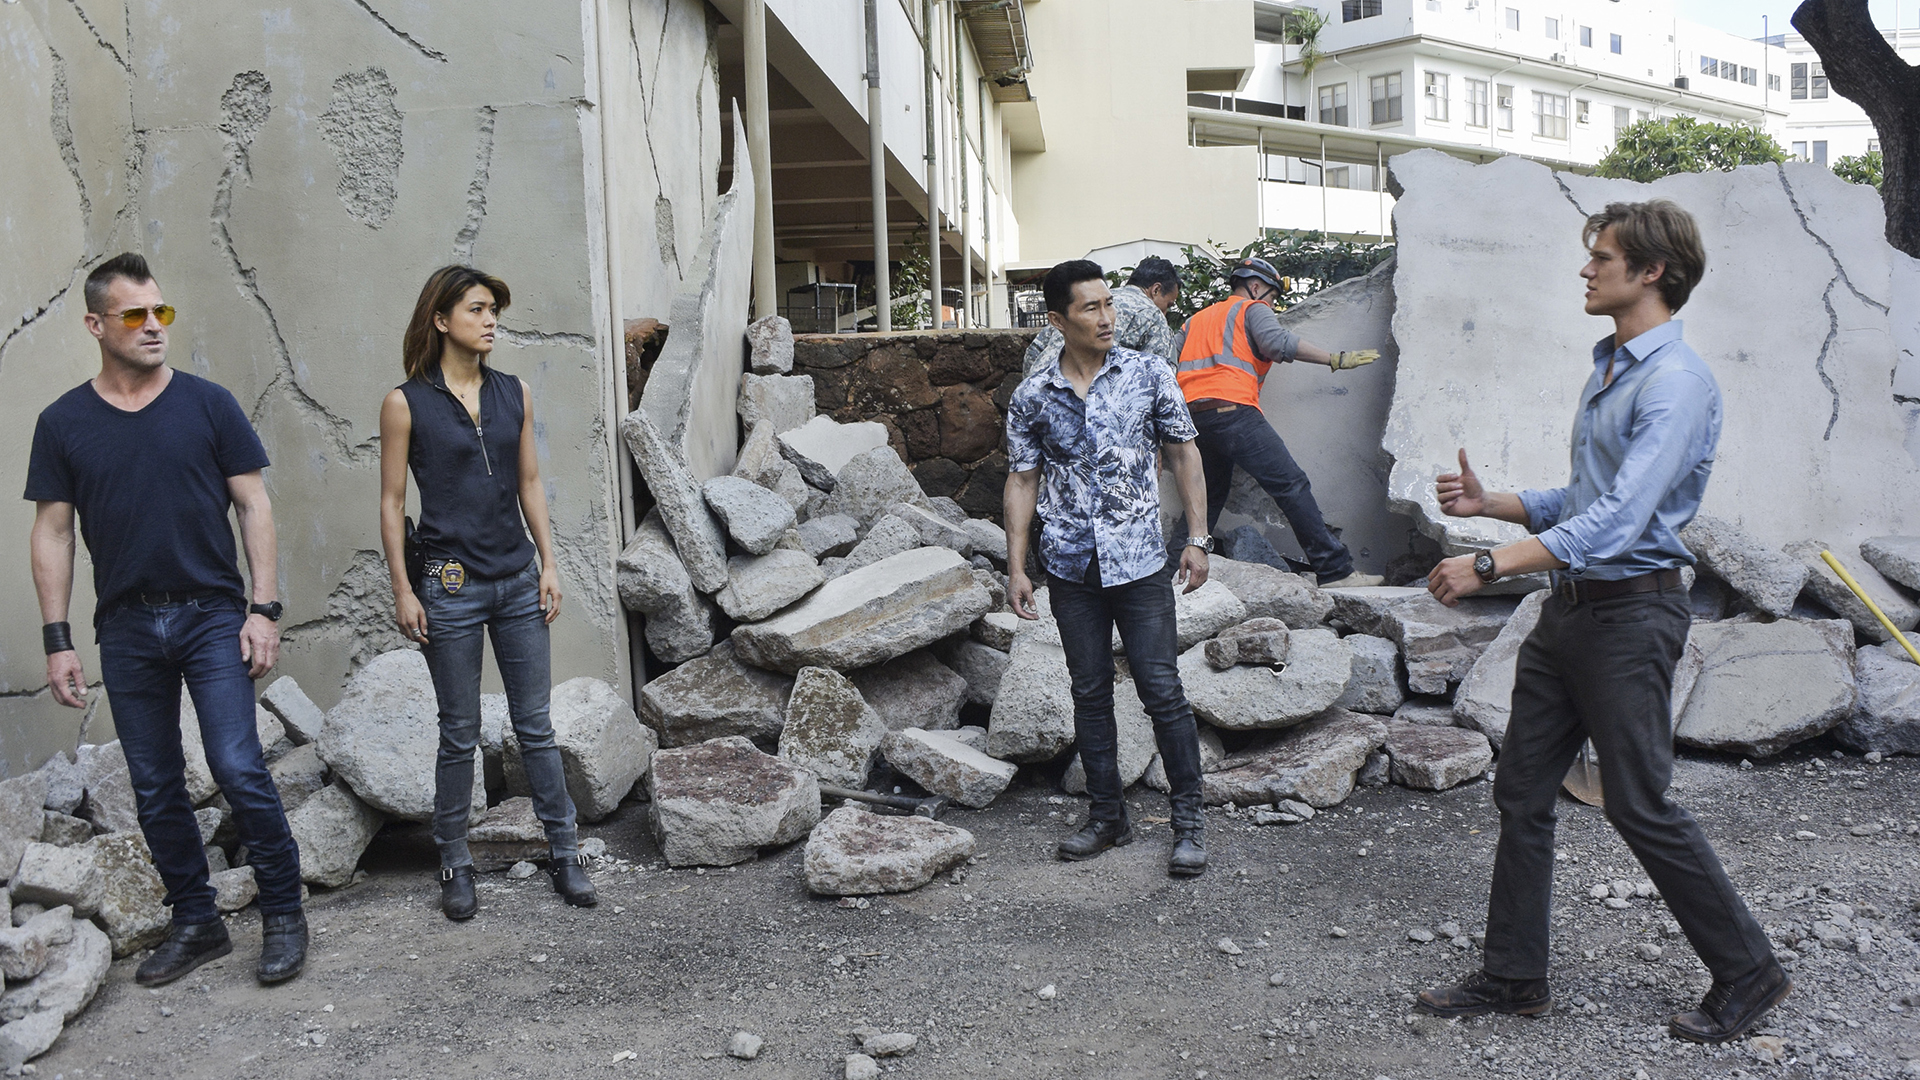 The team goes over the potential options amidst the earthquake wreckage.